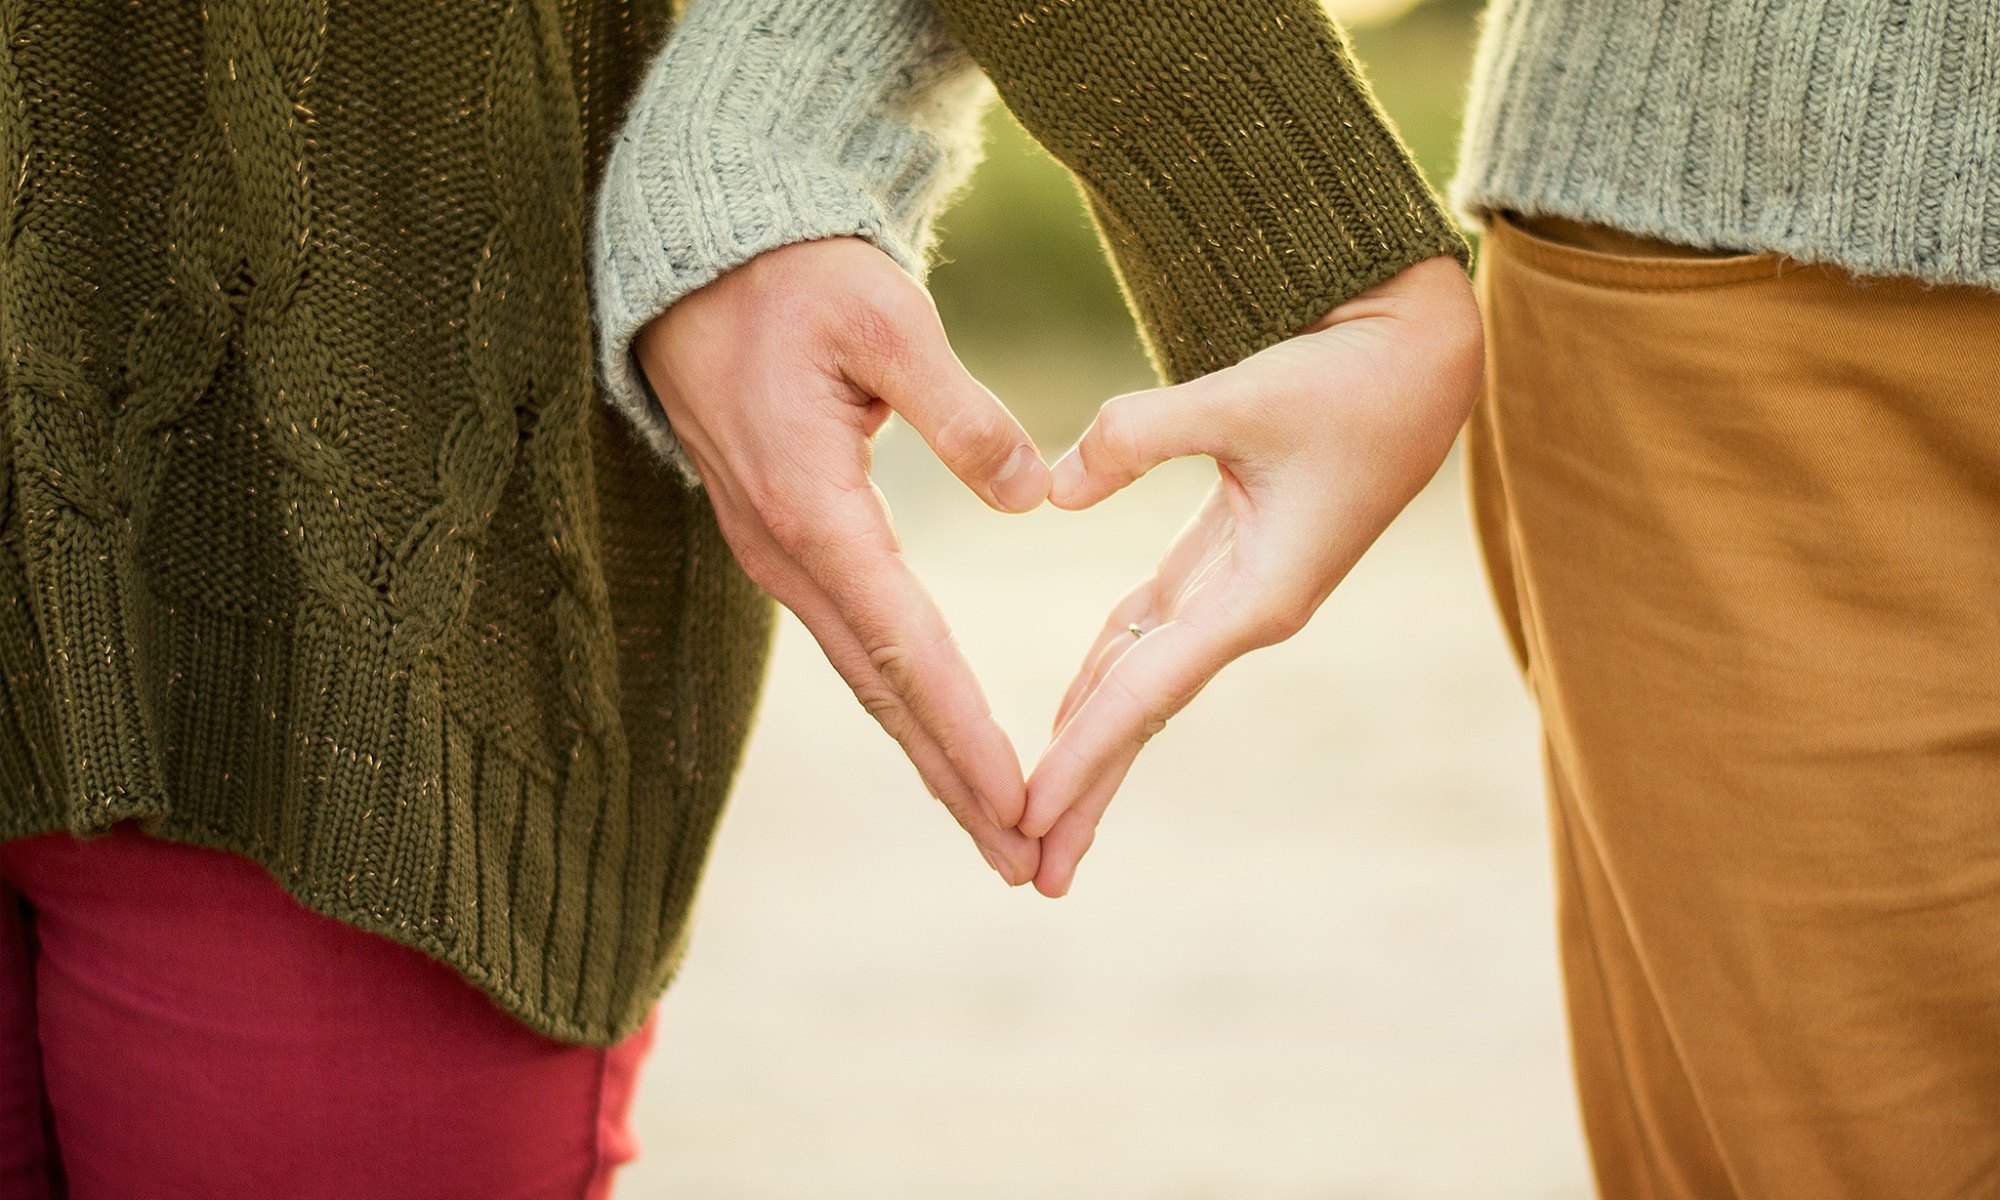 Two people being tender-hearted and forming a heart shape with their hands